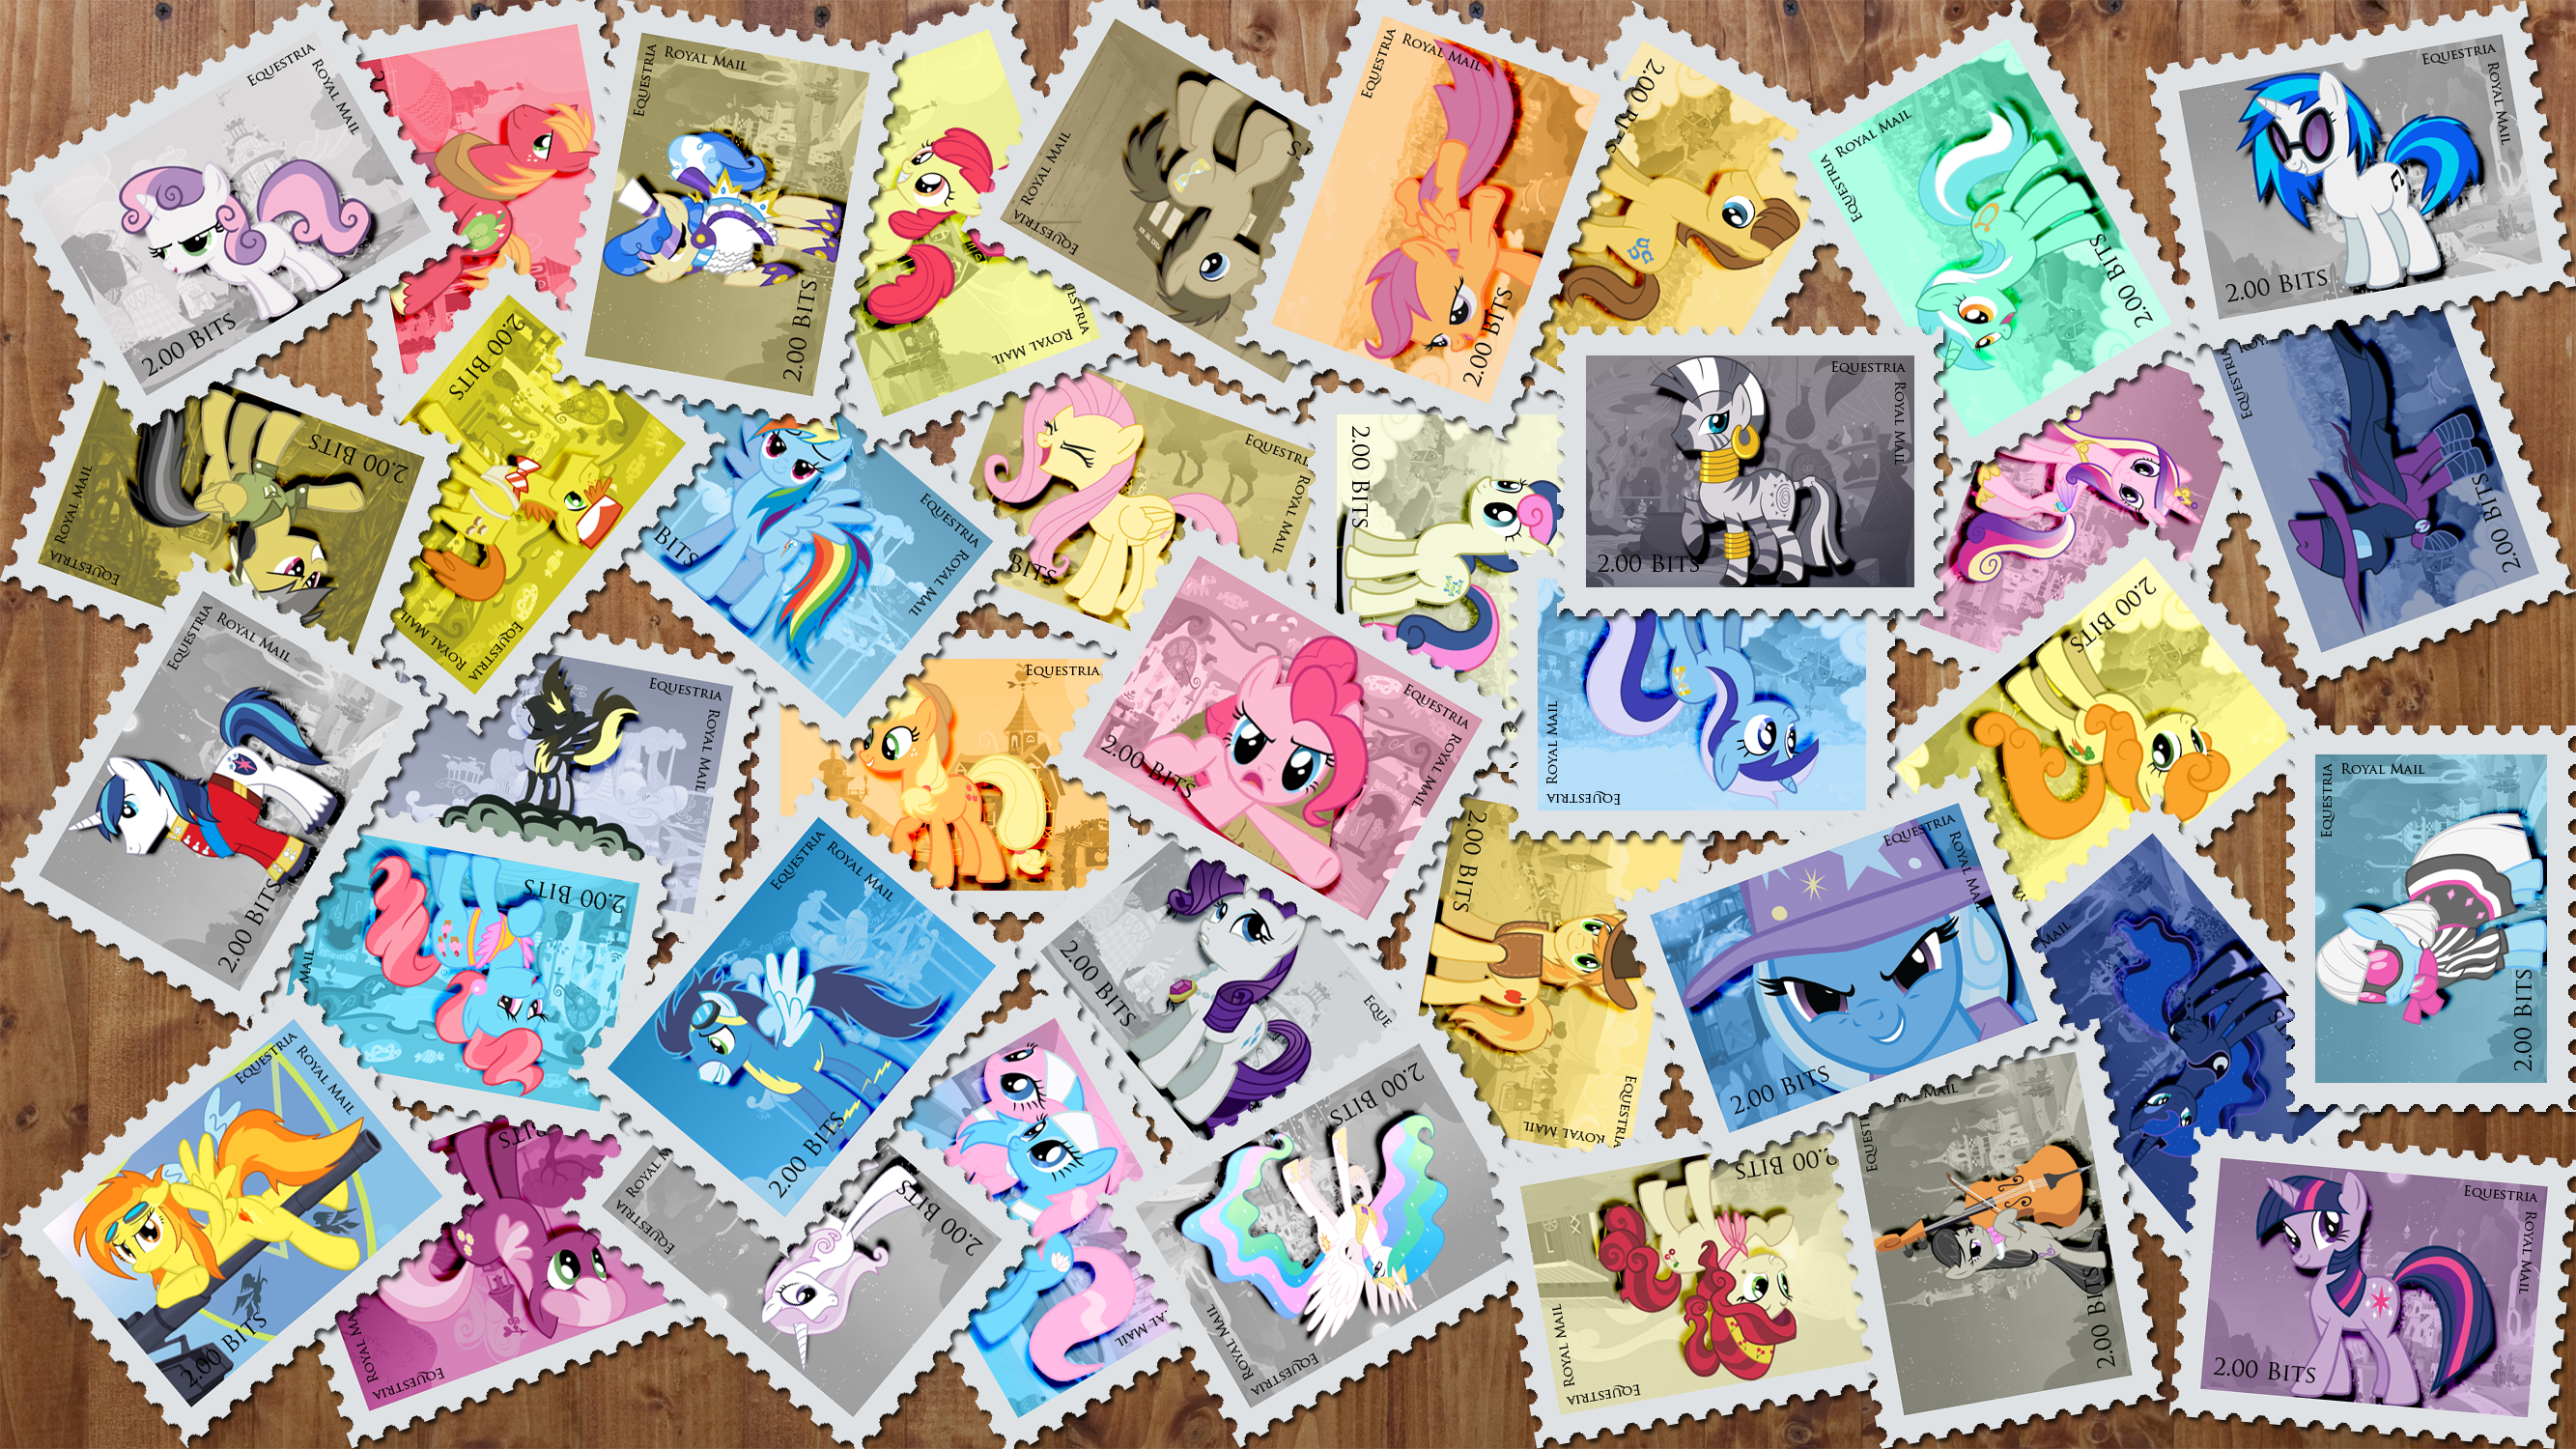 39737395, Stamp Backgrounds, Jeni Hutson